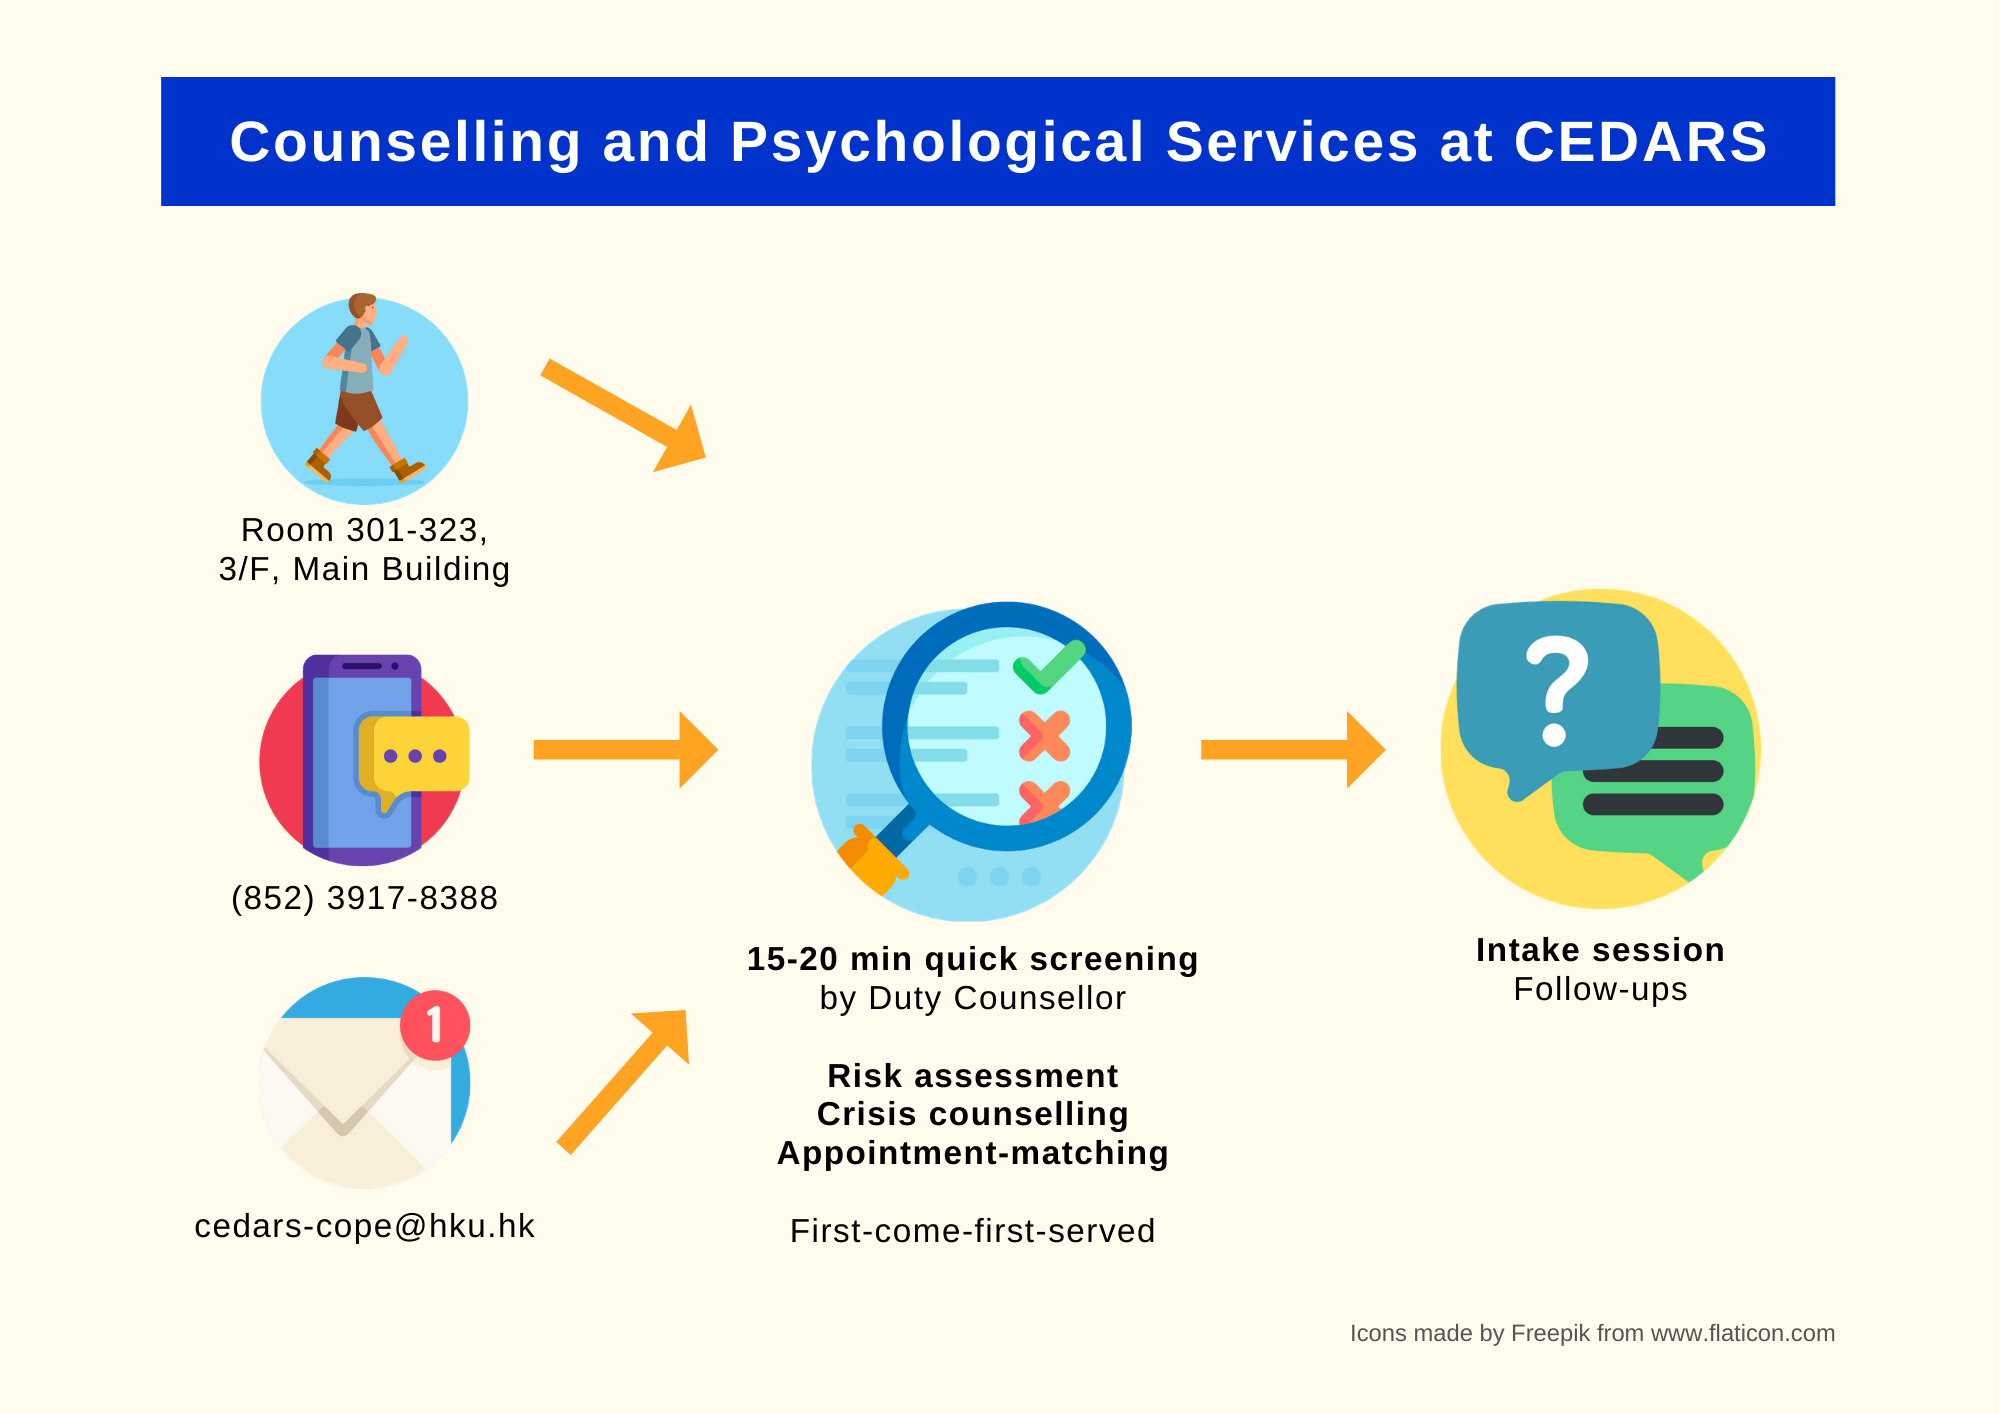 A flow chart illustrating the procedure of making counselling appointments